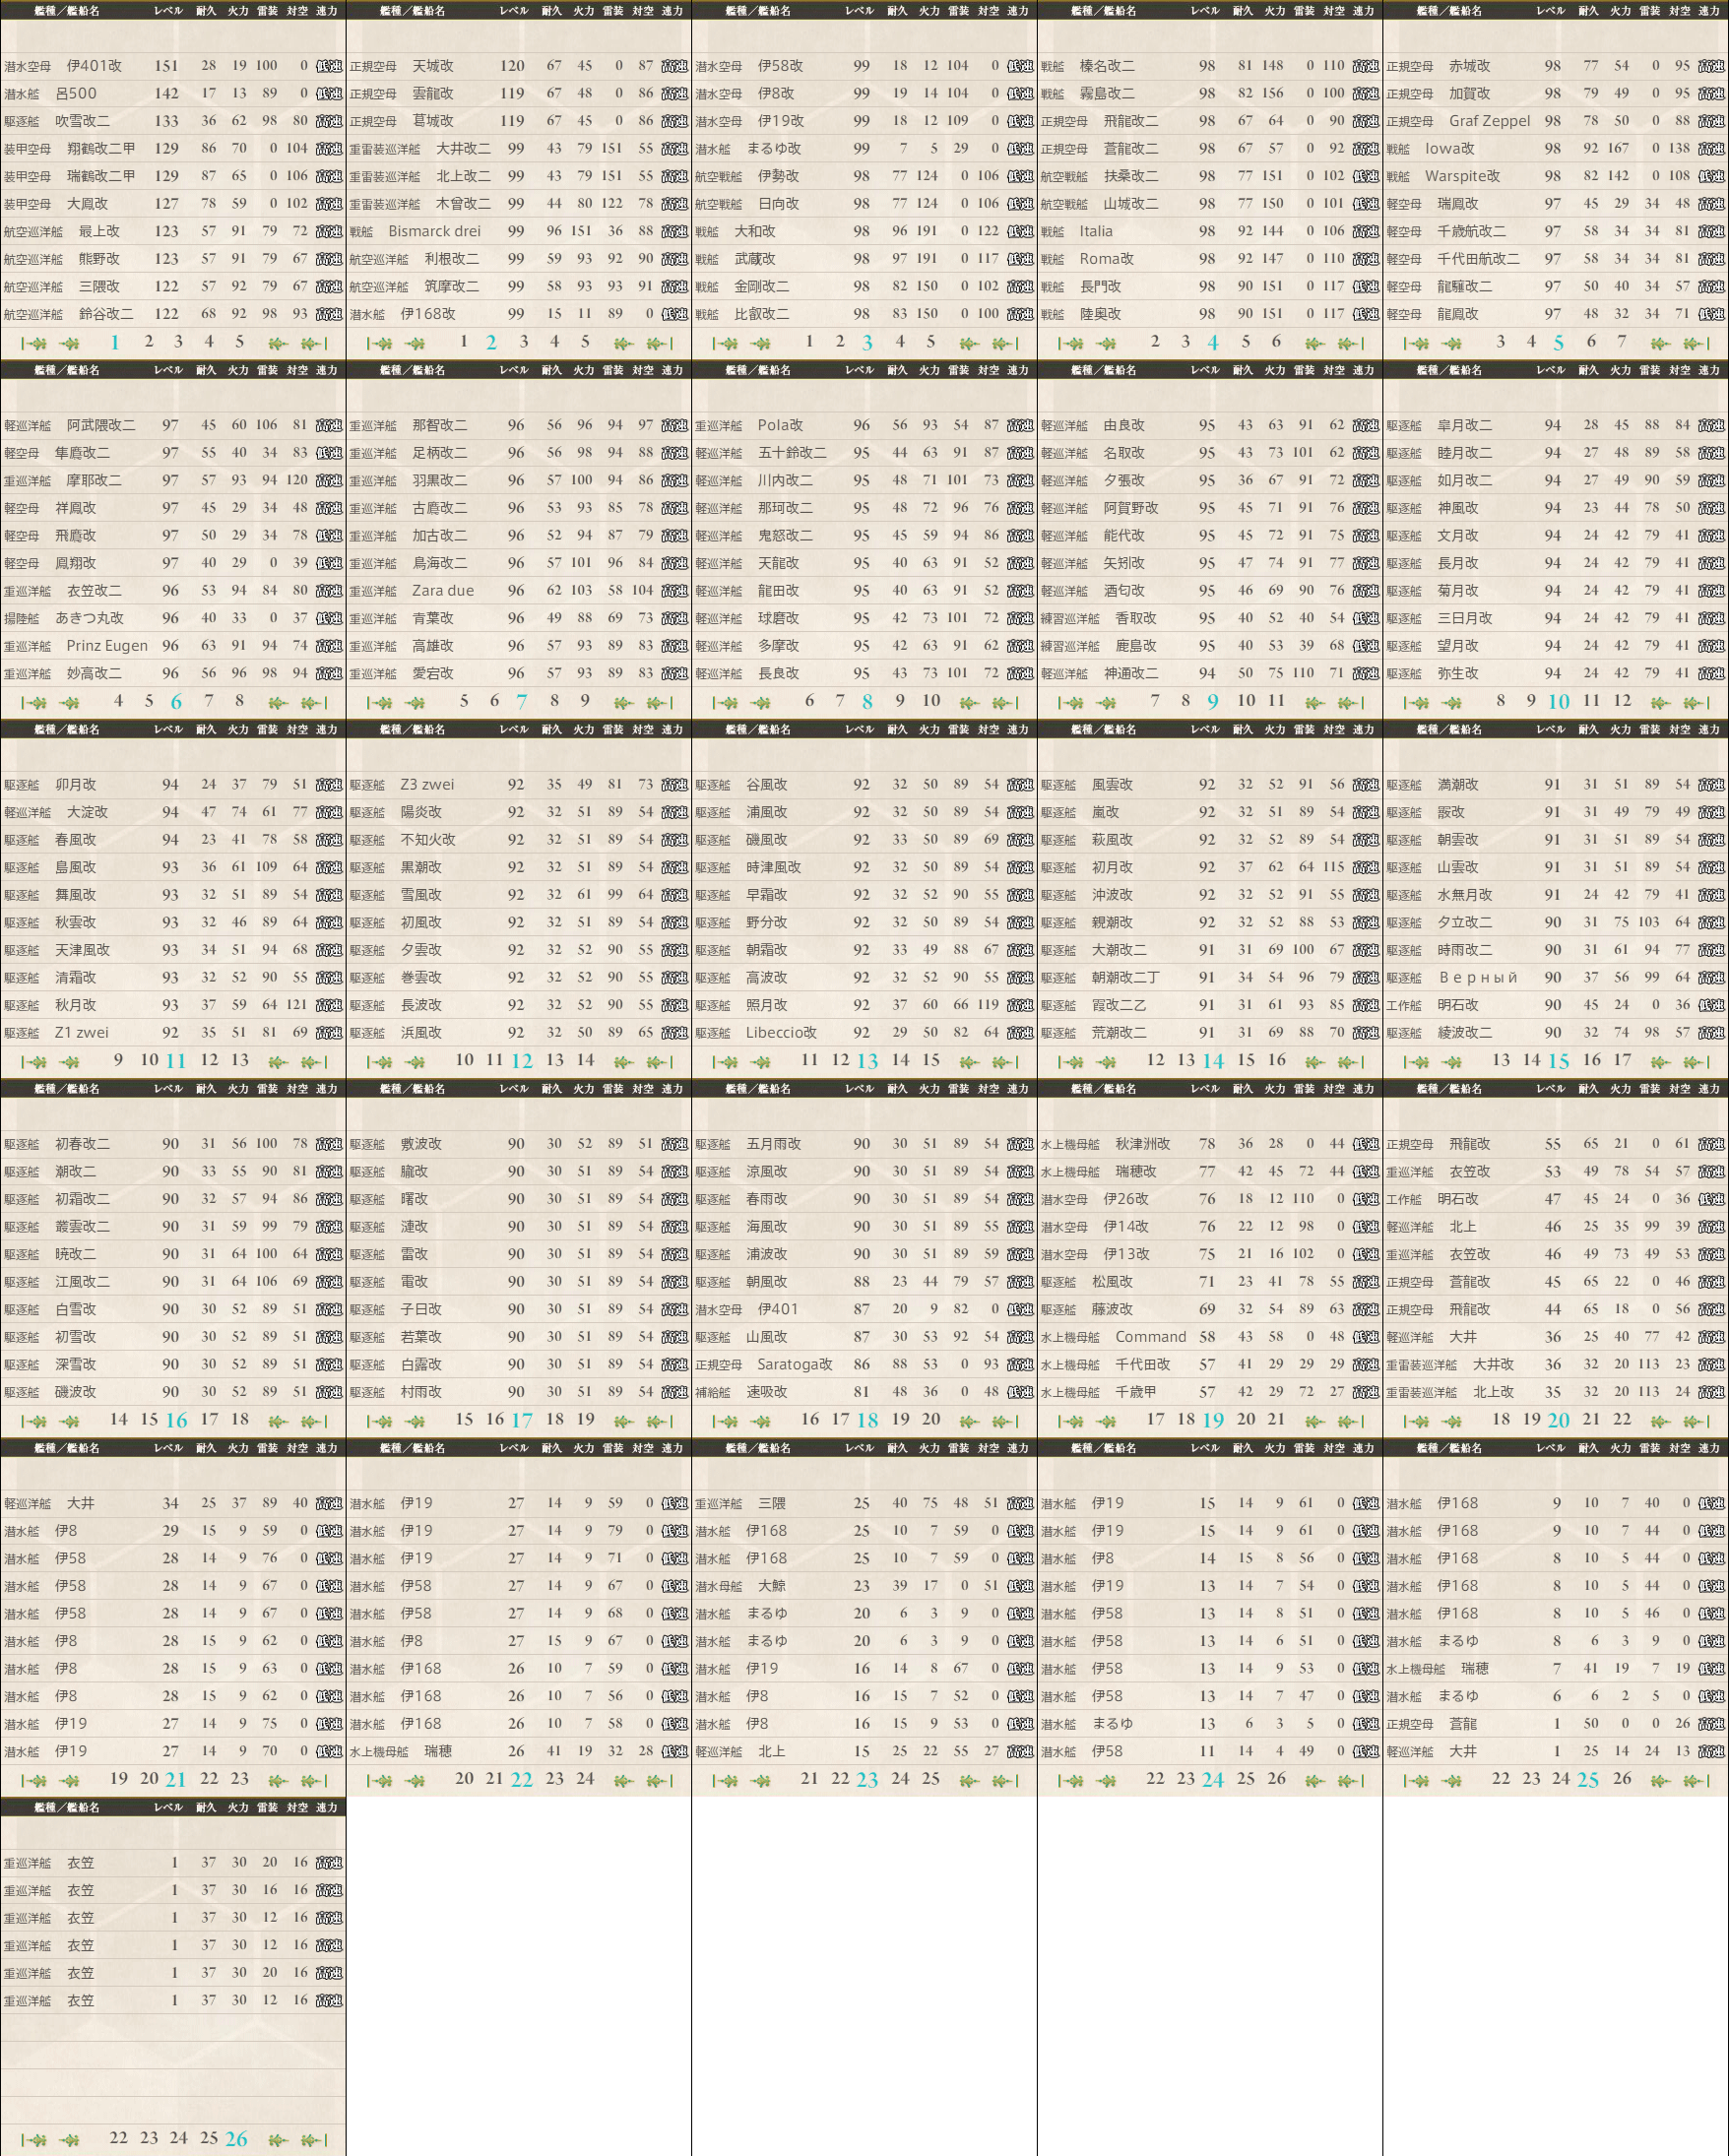 data.kancolle.levelsort.20170430.png